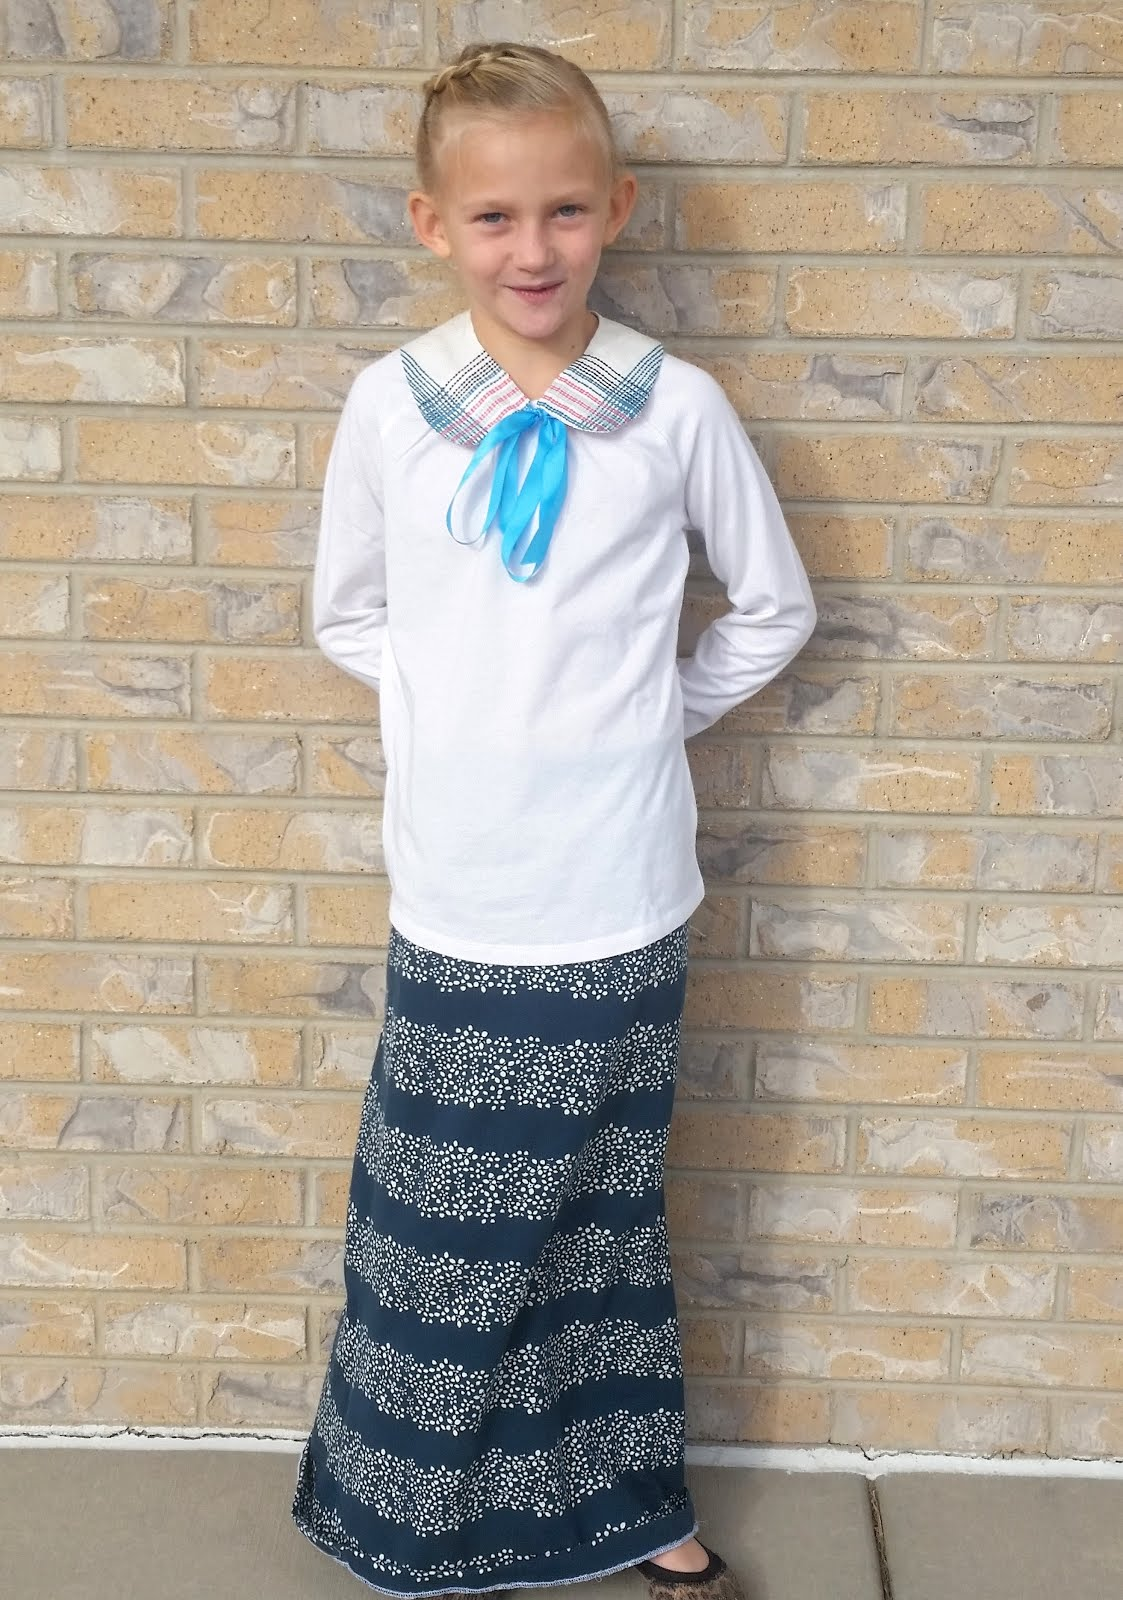 Girls Skirts; Girls Tops; Girls Undergarments and Night Apparel; Girls Aprons and Vests; Uniforms. Uniform by School/Co. Alabama. Bible Missionary Academy-Birmingham, AL This girls long denim prairie skirt has 3 or 4 tiers denim skirt with $ Add to Cart. Girls Denim Prairie Skirt.